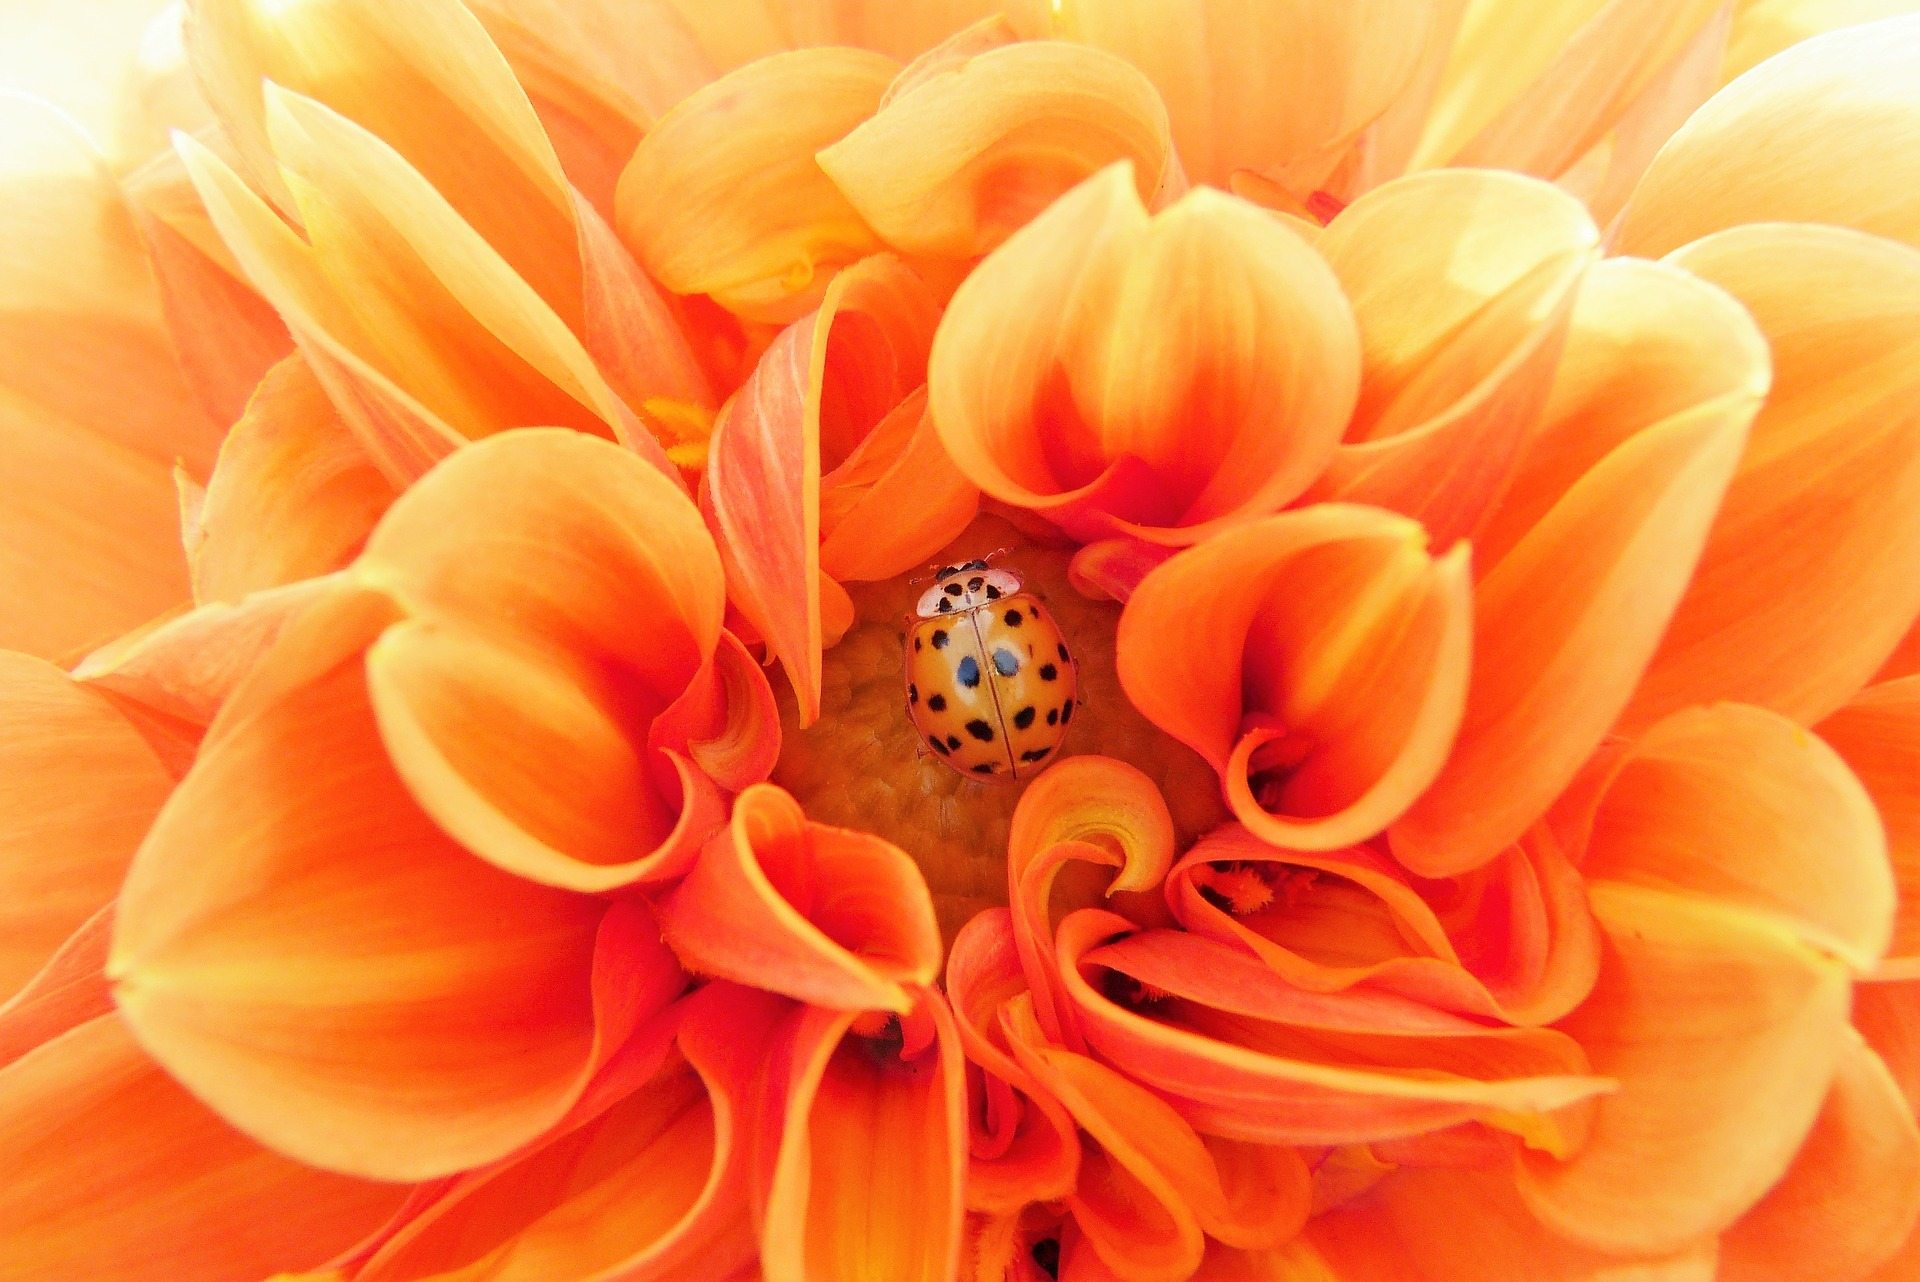 Fertility - Increasing your chances. Dealing with the setbacks of failure and delay. Maintaining a relaxed, happy focus.